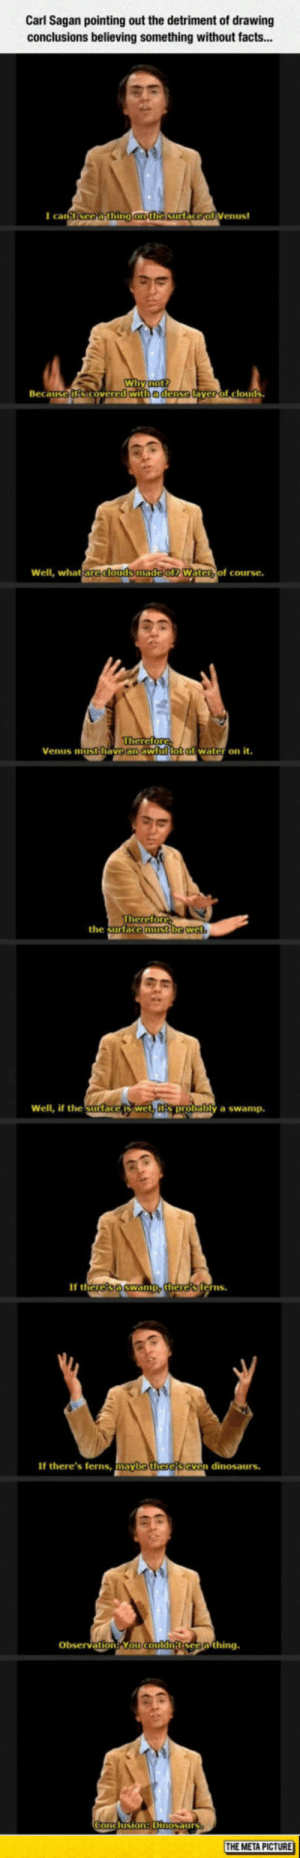 awesomesthesia:  Carl Sagan Has A Very Valid Point: Carl Sagan pointing out the detriment of drawing  conclusions believing something without facts...  I can  Wi  Beca  edense  yerol clouds  Well, what  of course.  Venus mitithave an aw  water on it.  the surtace  Well, if the Surlace  y a swamp.  If th  erns  If there's ferns, mayb  n dinosaurs.  Obsevation Yo  THE META PICTURE awesomesthesia:  Carl Sagan Has A Very Valid Point